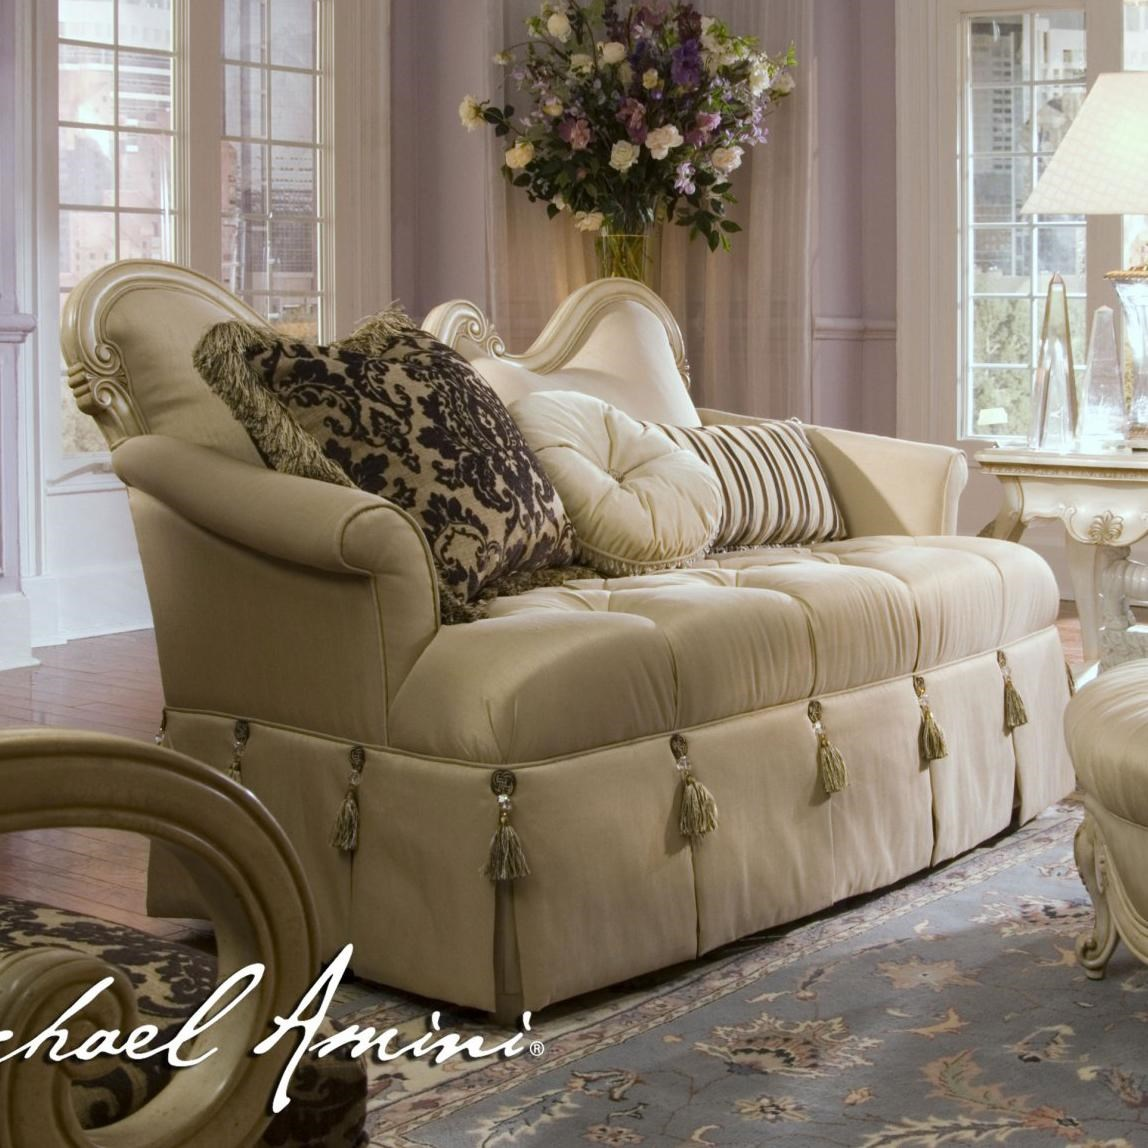 Michael Amini Furniture Store Locations Michael Amini Lavelle Wood Trim Settee with Fringe Accents ...